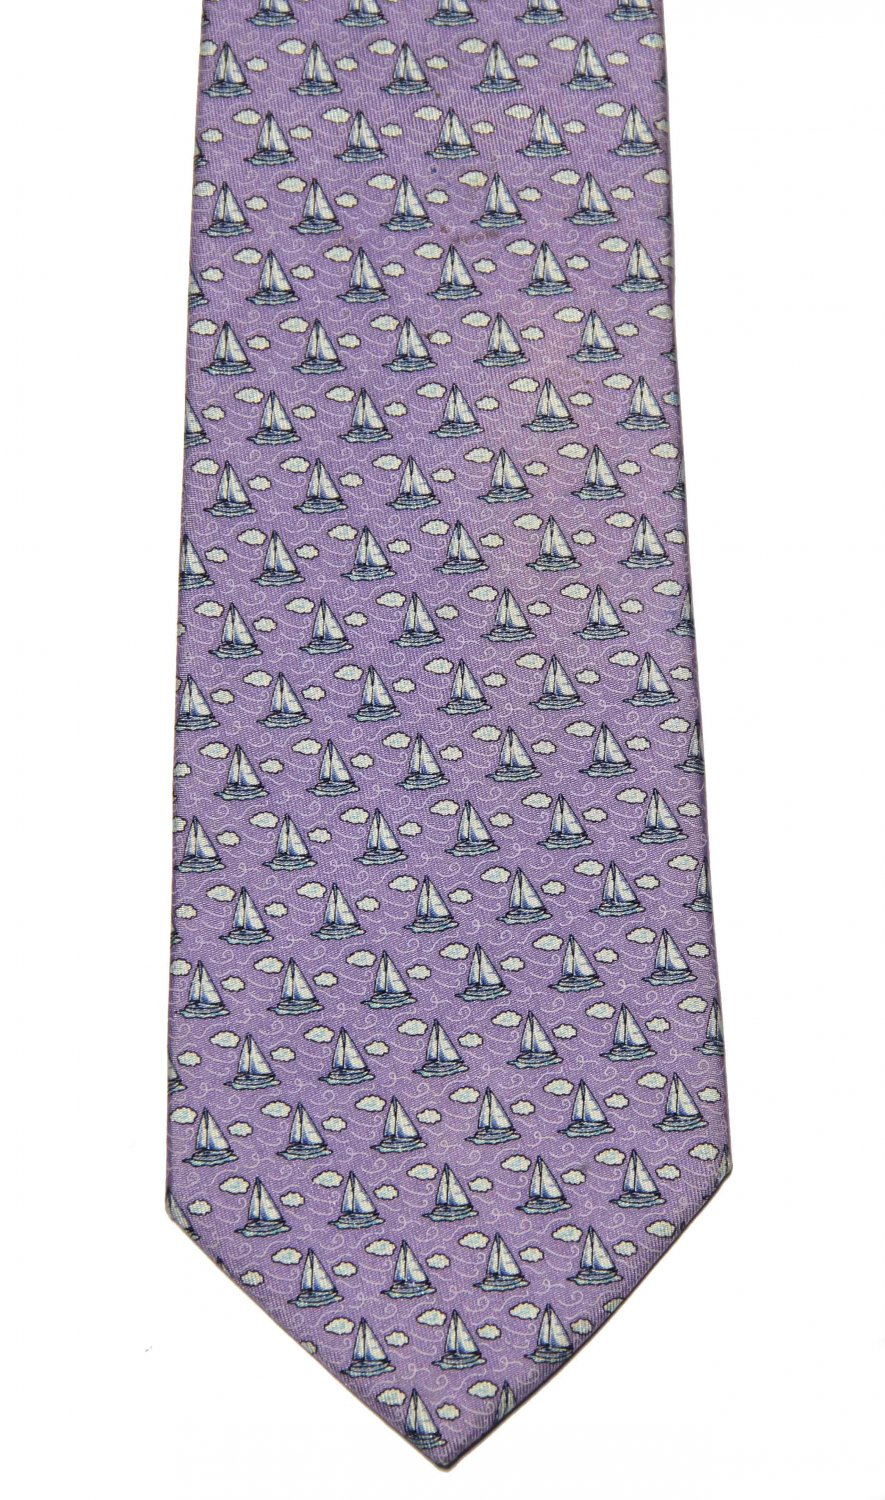 Vineyard Vines Tie Silk Purple Blue White Sailboats Men's